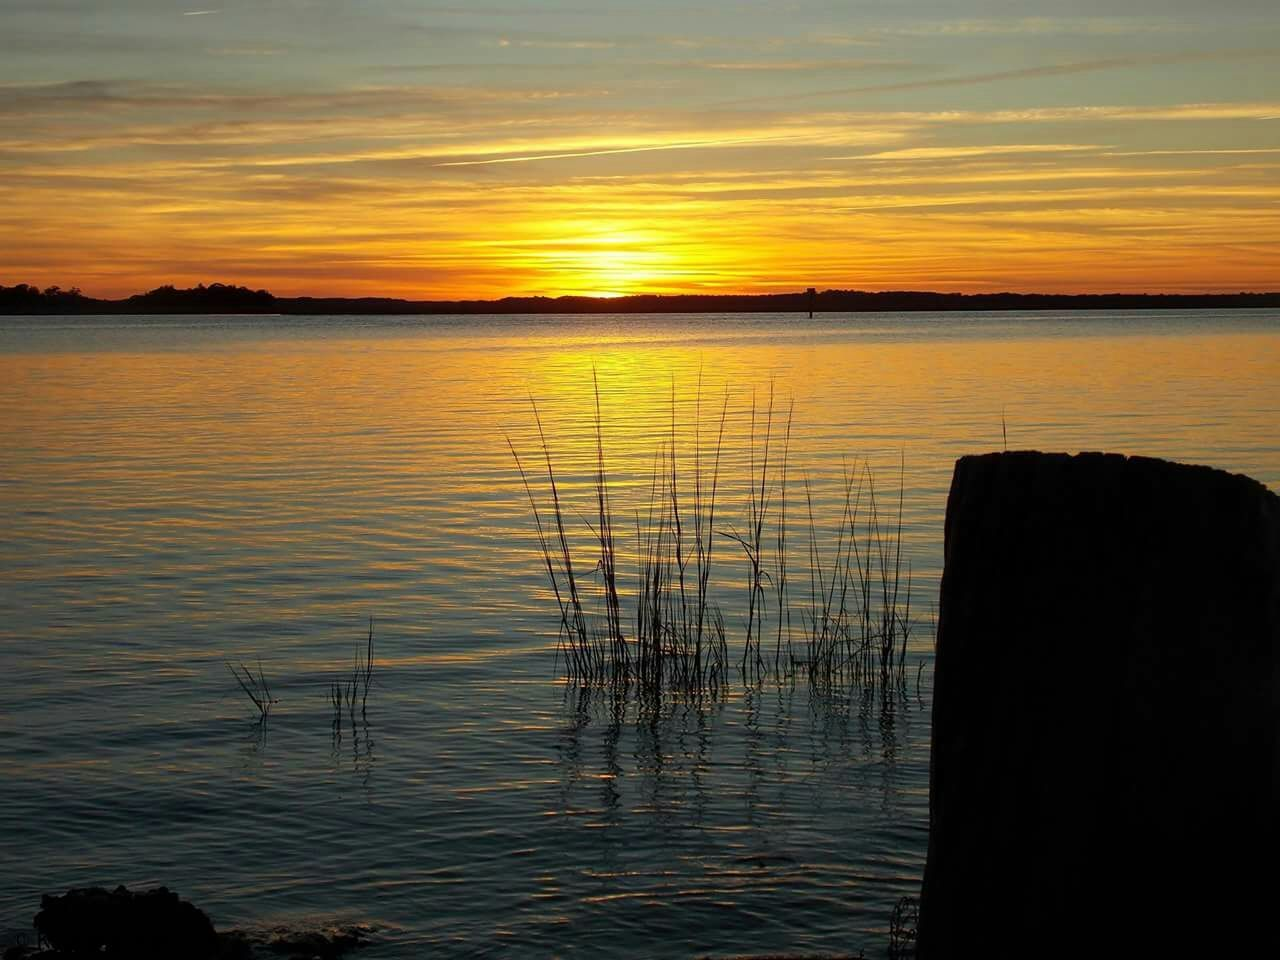 Showcase: November a another different sunset. I love nature. Sunsetporn Like No Other  EyeEm Sunset EyeEm Nature Lover This Week On Eyeem Blessedandthankful United States South Carolina Enjoying The Sun Relaxing EyeEmBestPics I Love Taking Pictures <3 Live Near You Eyeem Popular Photos Eyeemphotography Wadmalaw Island SC Beautiful Surroundings Eye4photography  Capture The Moment